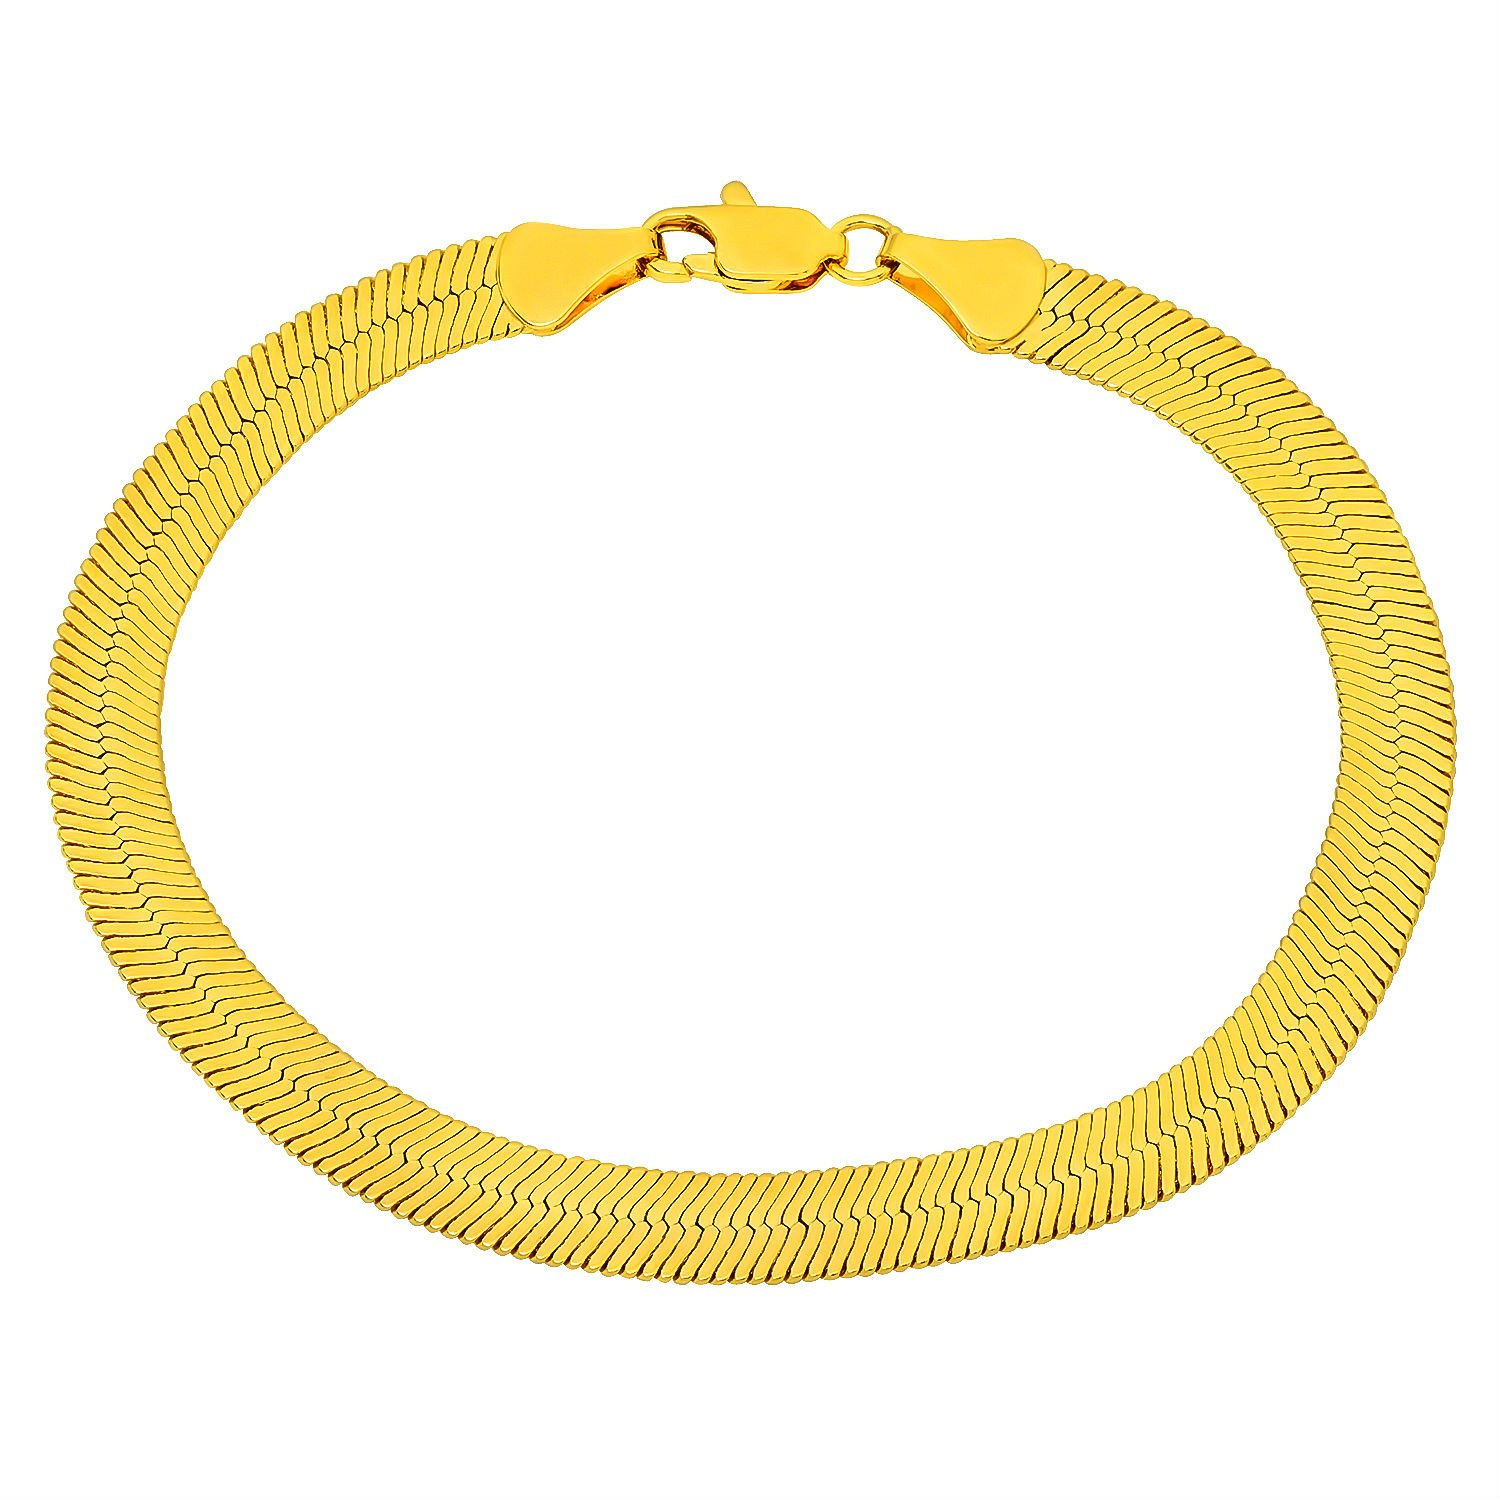 "AWESOME 8"" inch 10kt Gold 10mm wide Herringbone Bracelet"